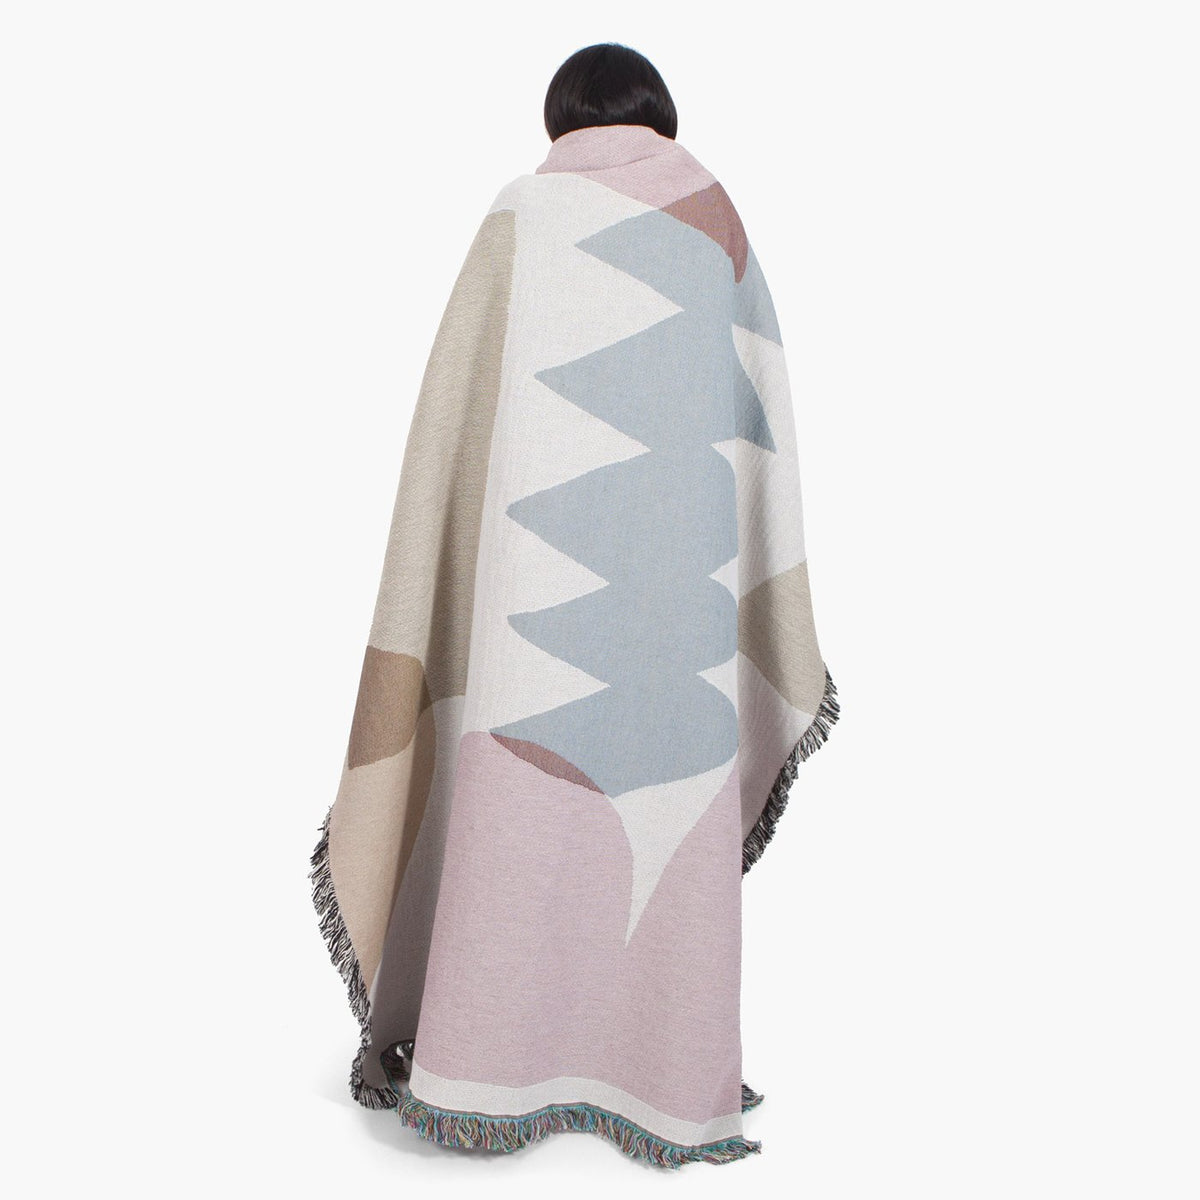 hanna Konola Holloway Throw by Slowdown Studios white abstract shape rug Makers Mrkt Makers Market Melbourne